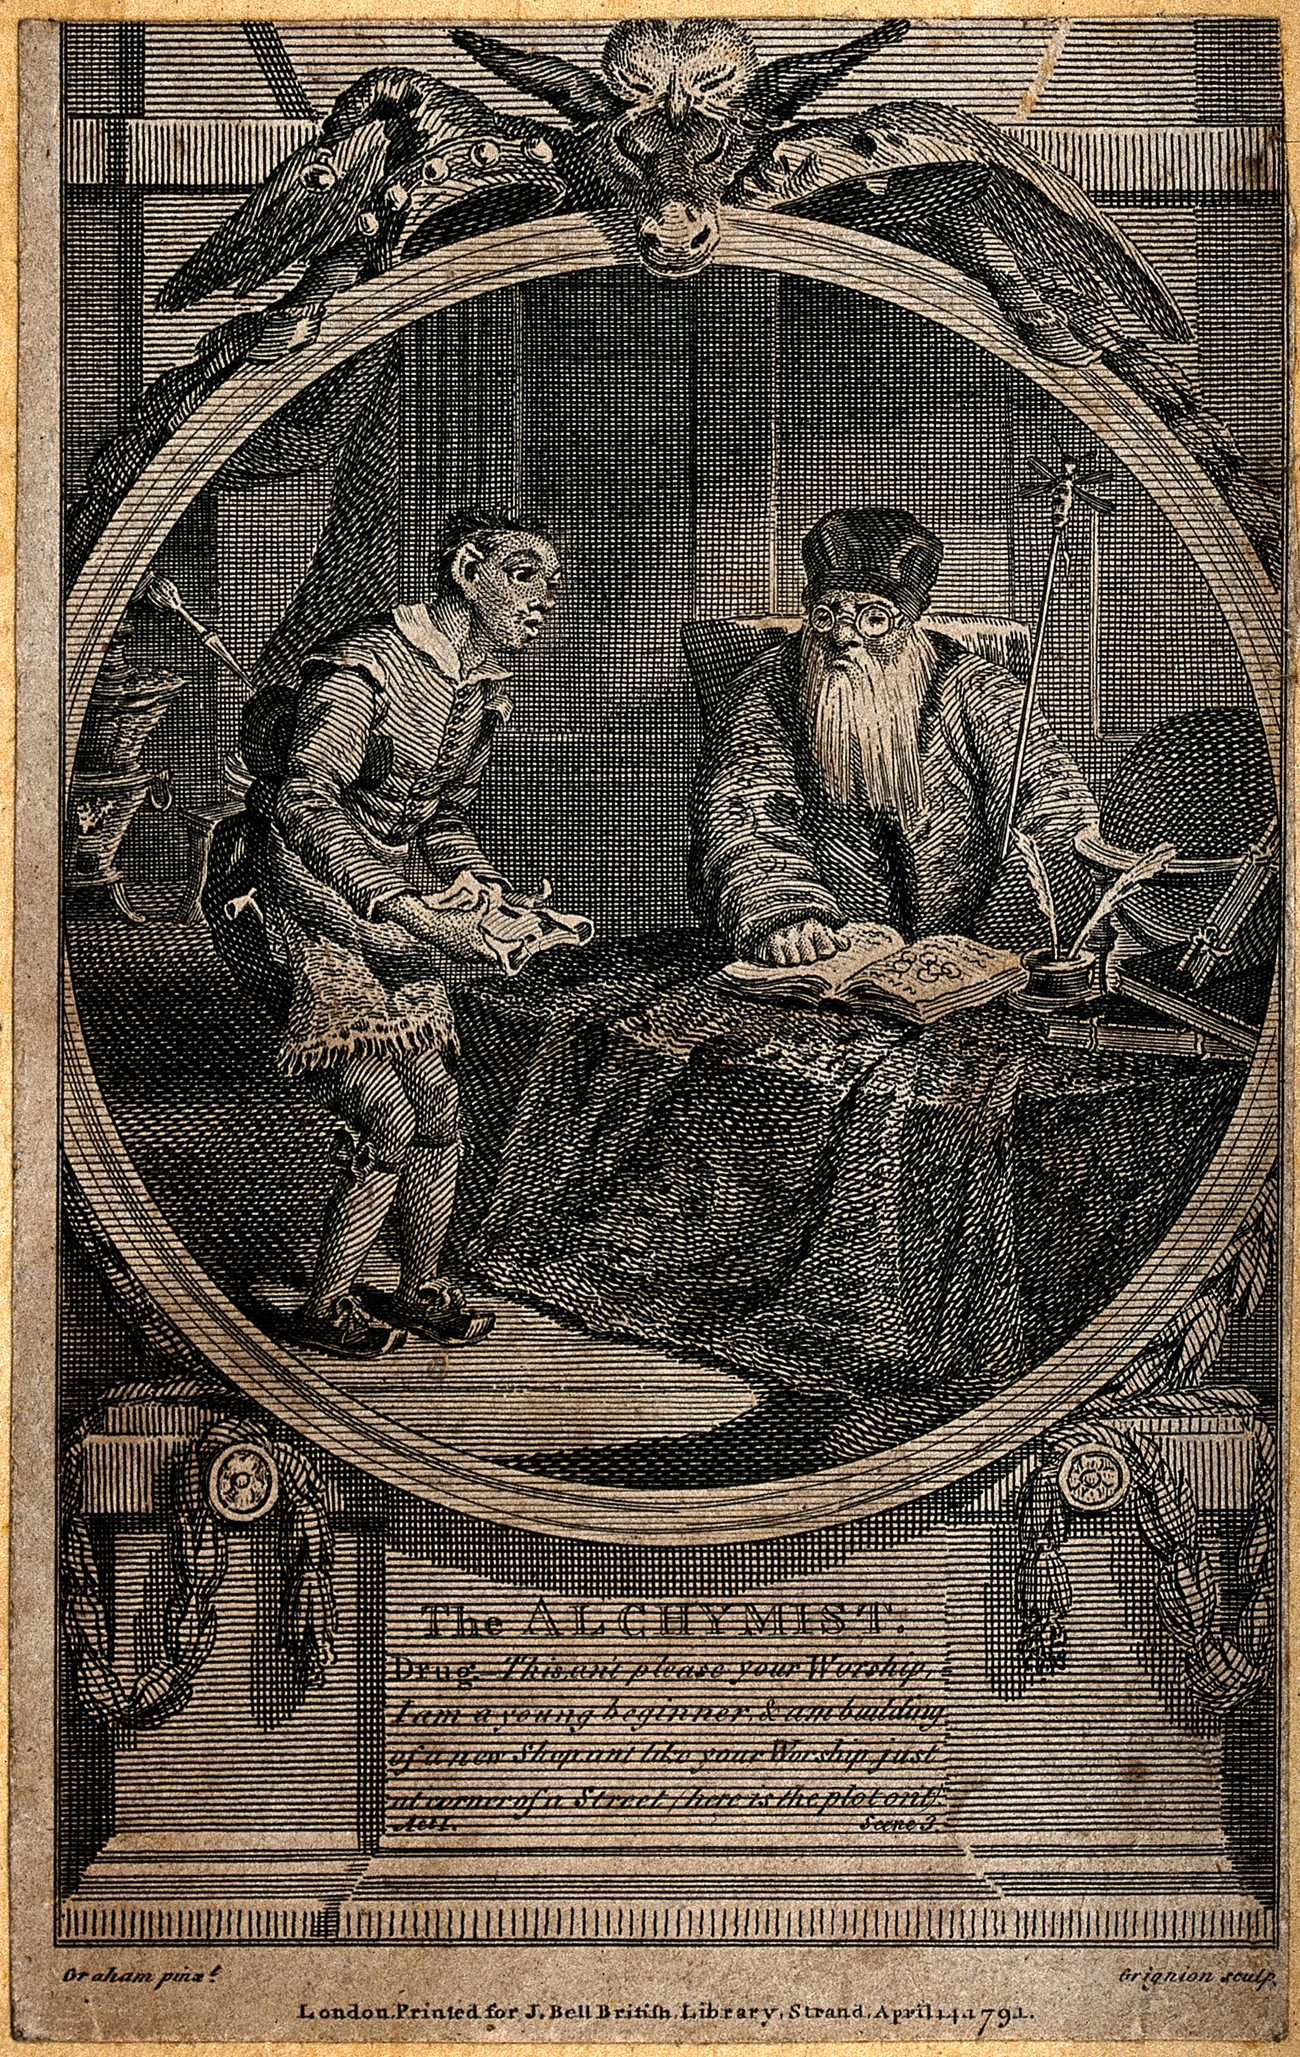 file subtle the alchemist posing as an astrologer being ed file subtle the alchemist posing as an astrologer being ed wellcome v0025571